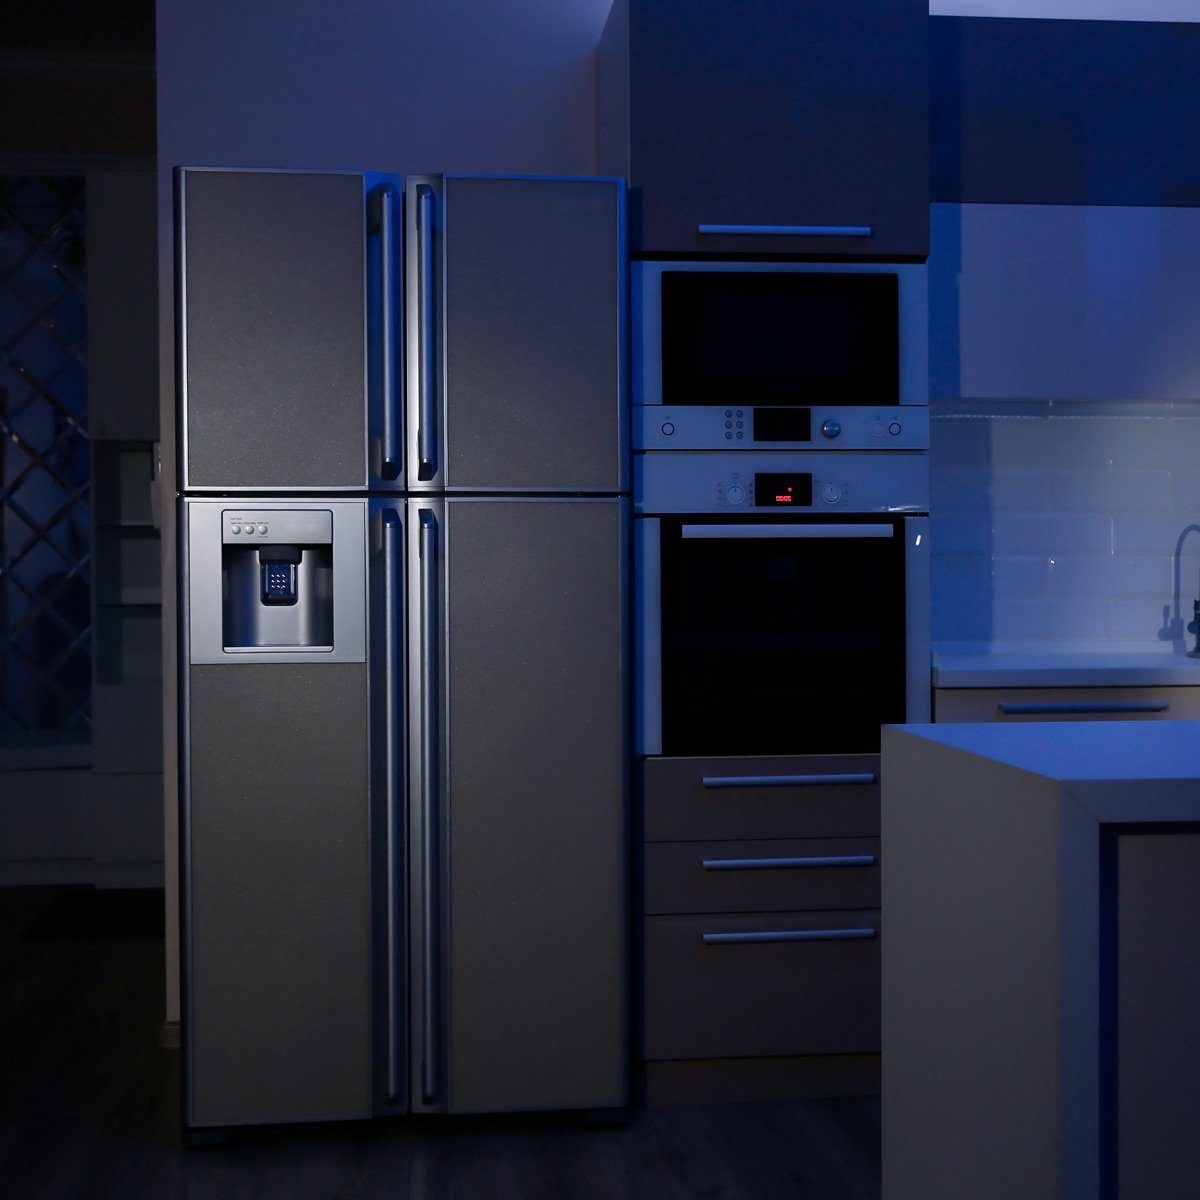 What to Do If Your Refrigerator Breaks Down